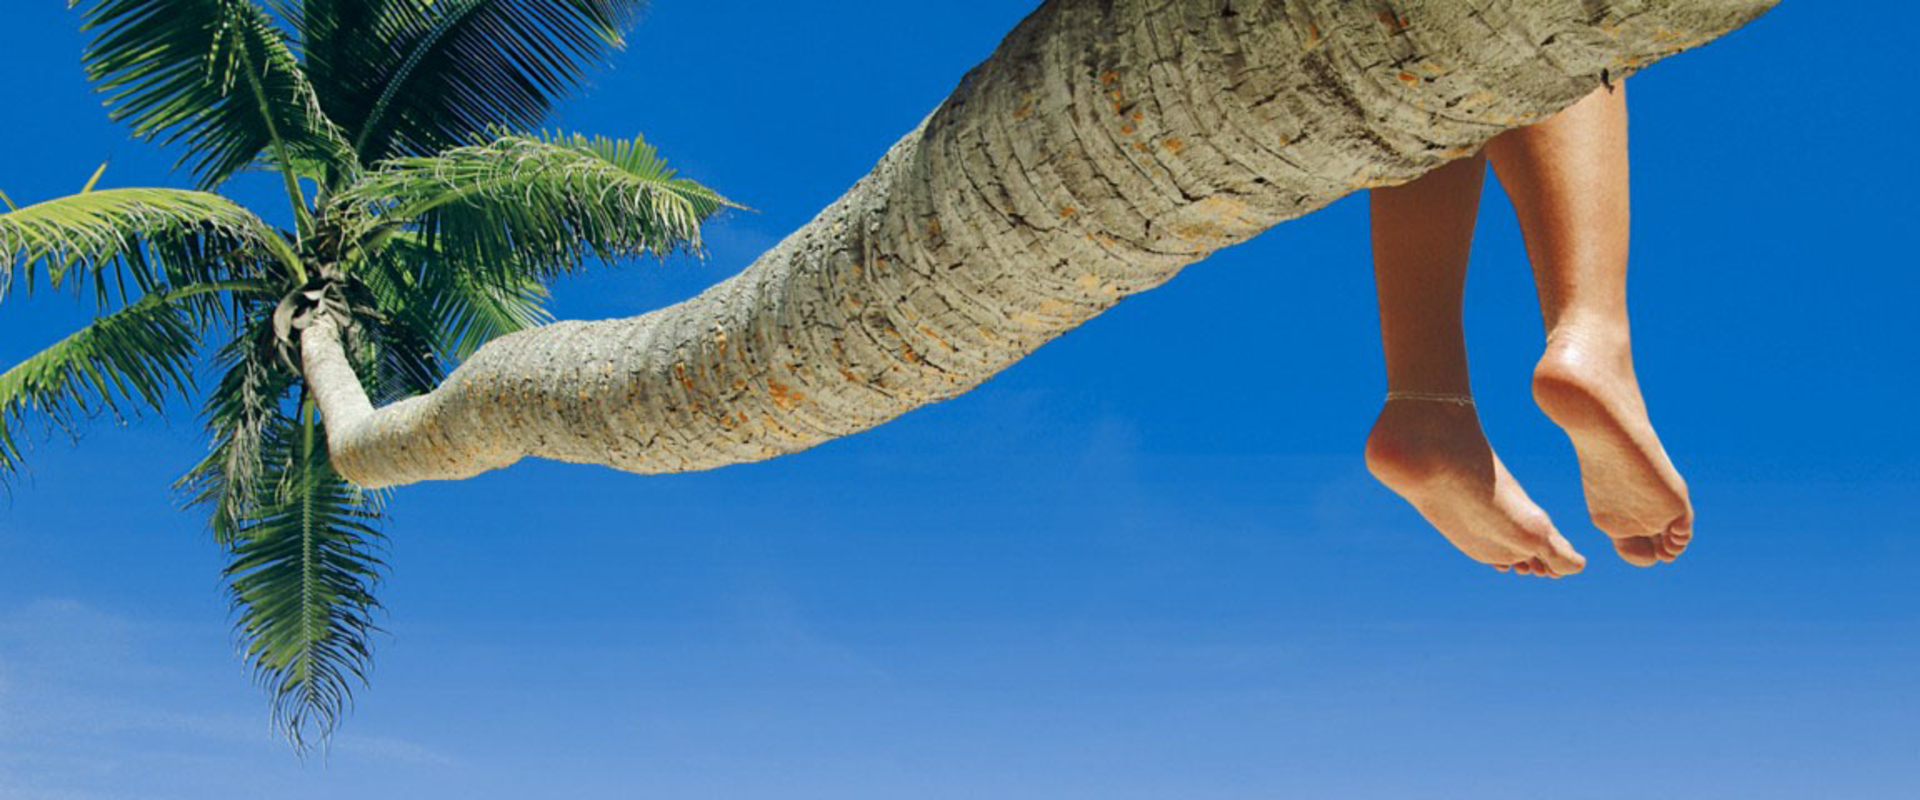 What is the best time of the year to go to punta cana?